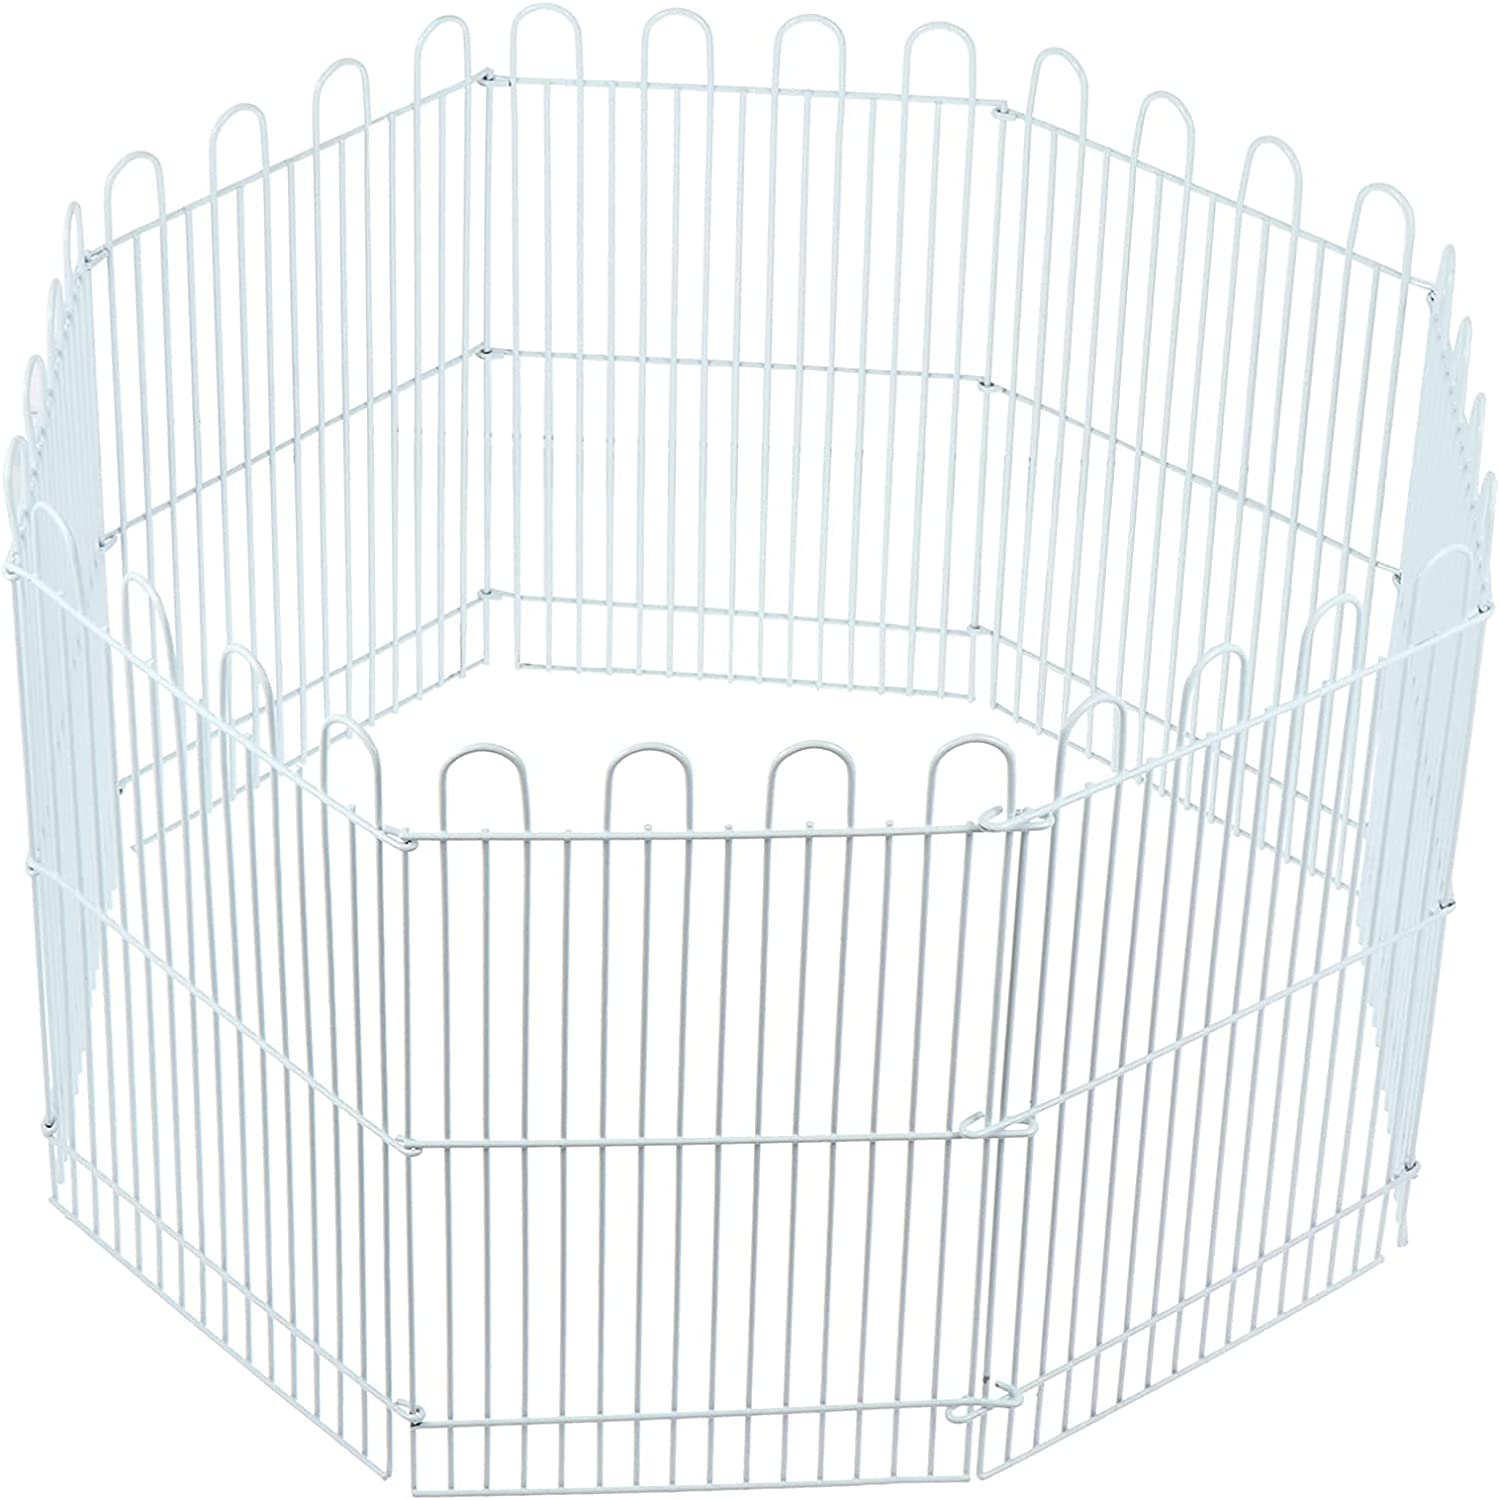 Hamster Playpen Iron Rabbit Fence Very Complete Free Shipping popular Small Pen Cage Animal Exercise